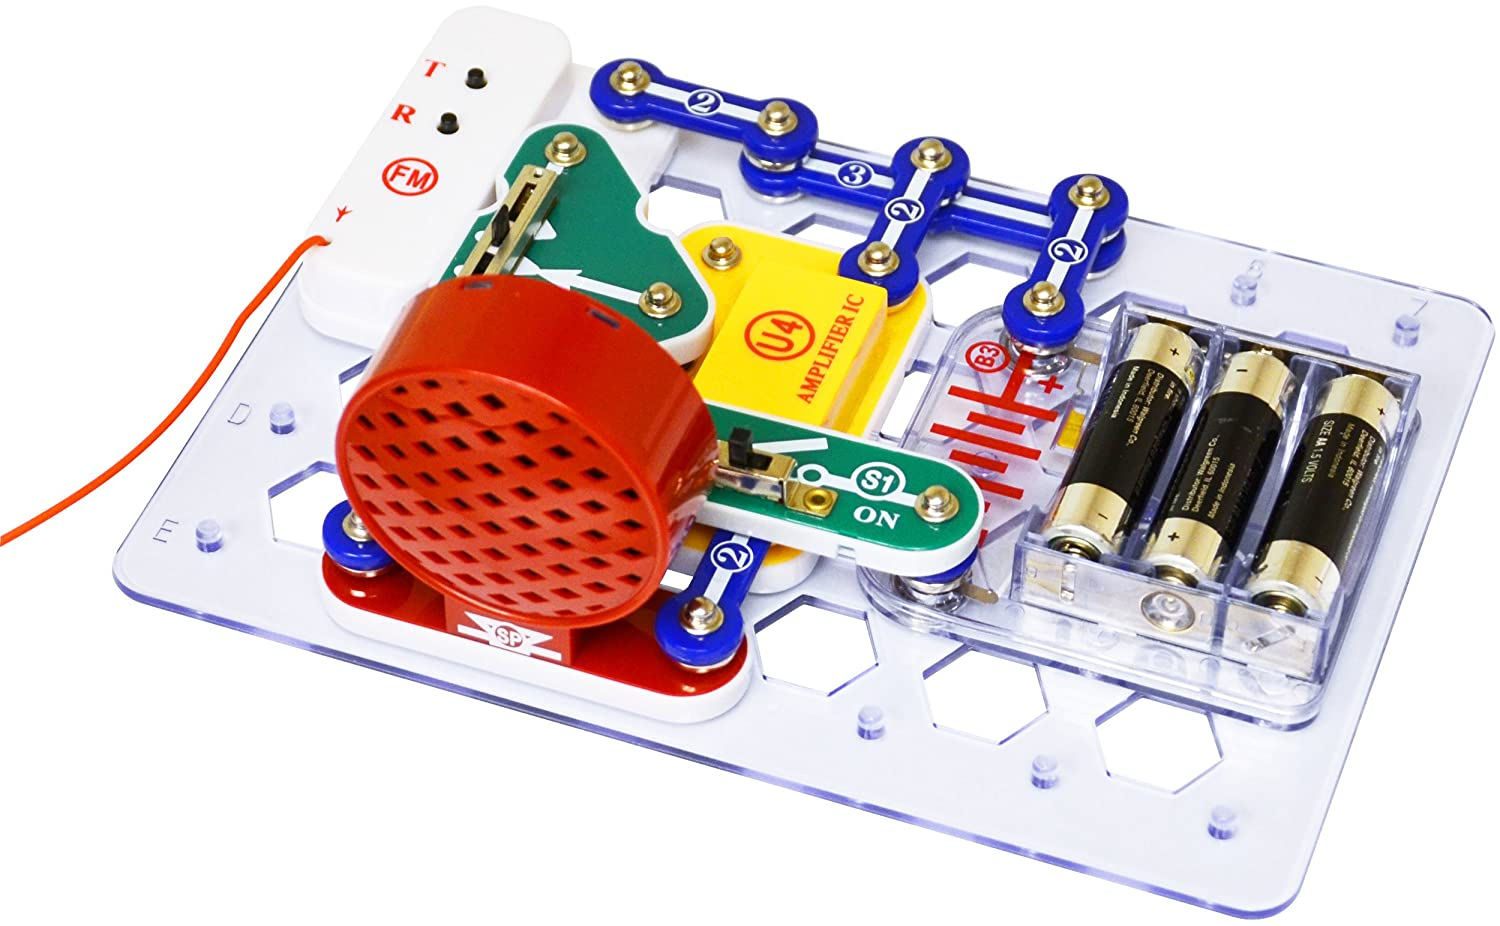 Snap Circuits Fm Radio Kit Toys Games Elenco Flying Saucer Easy To Build Provides Hours Of Fun